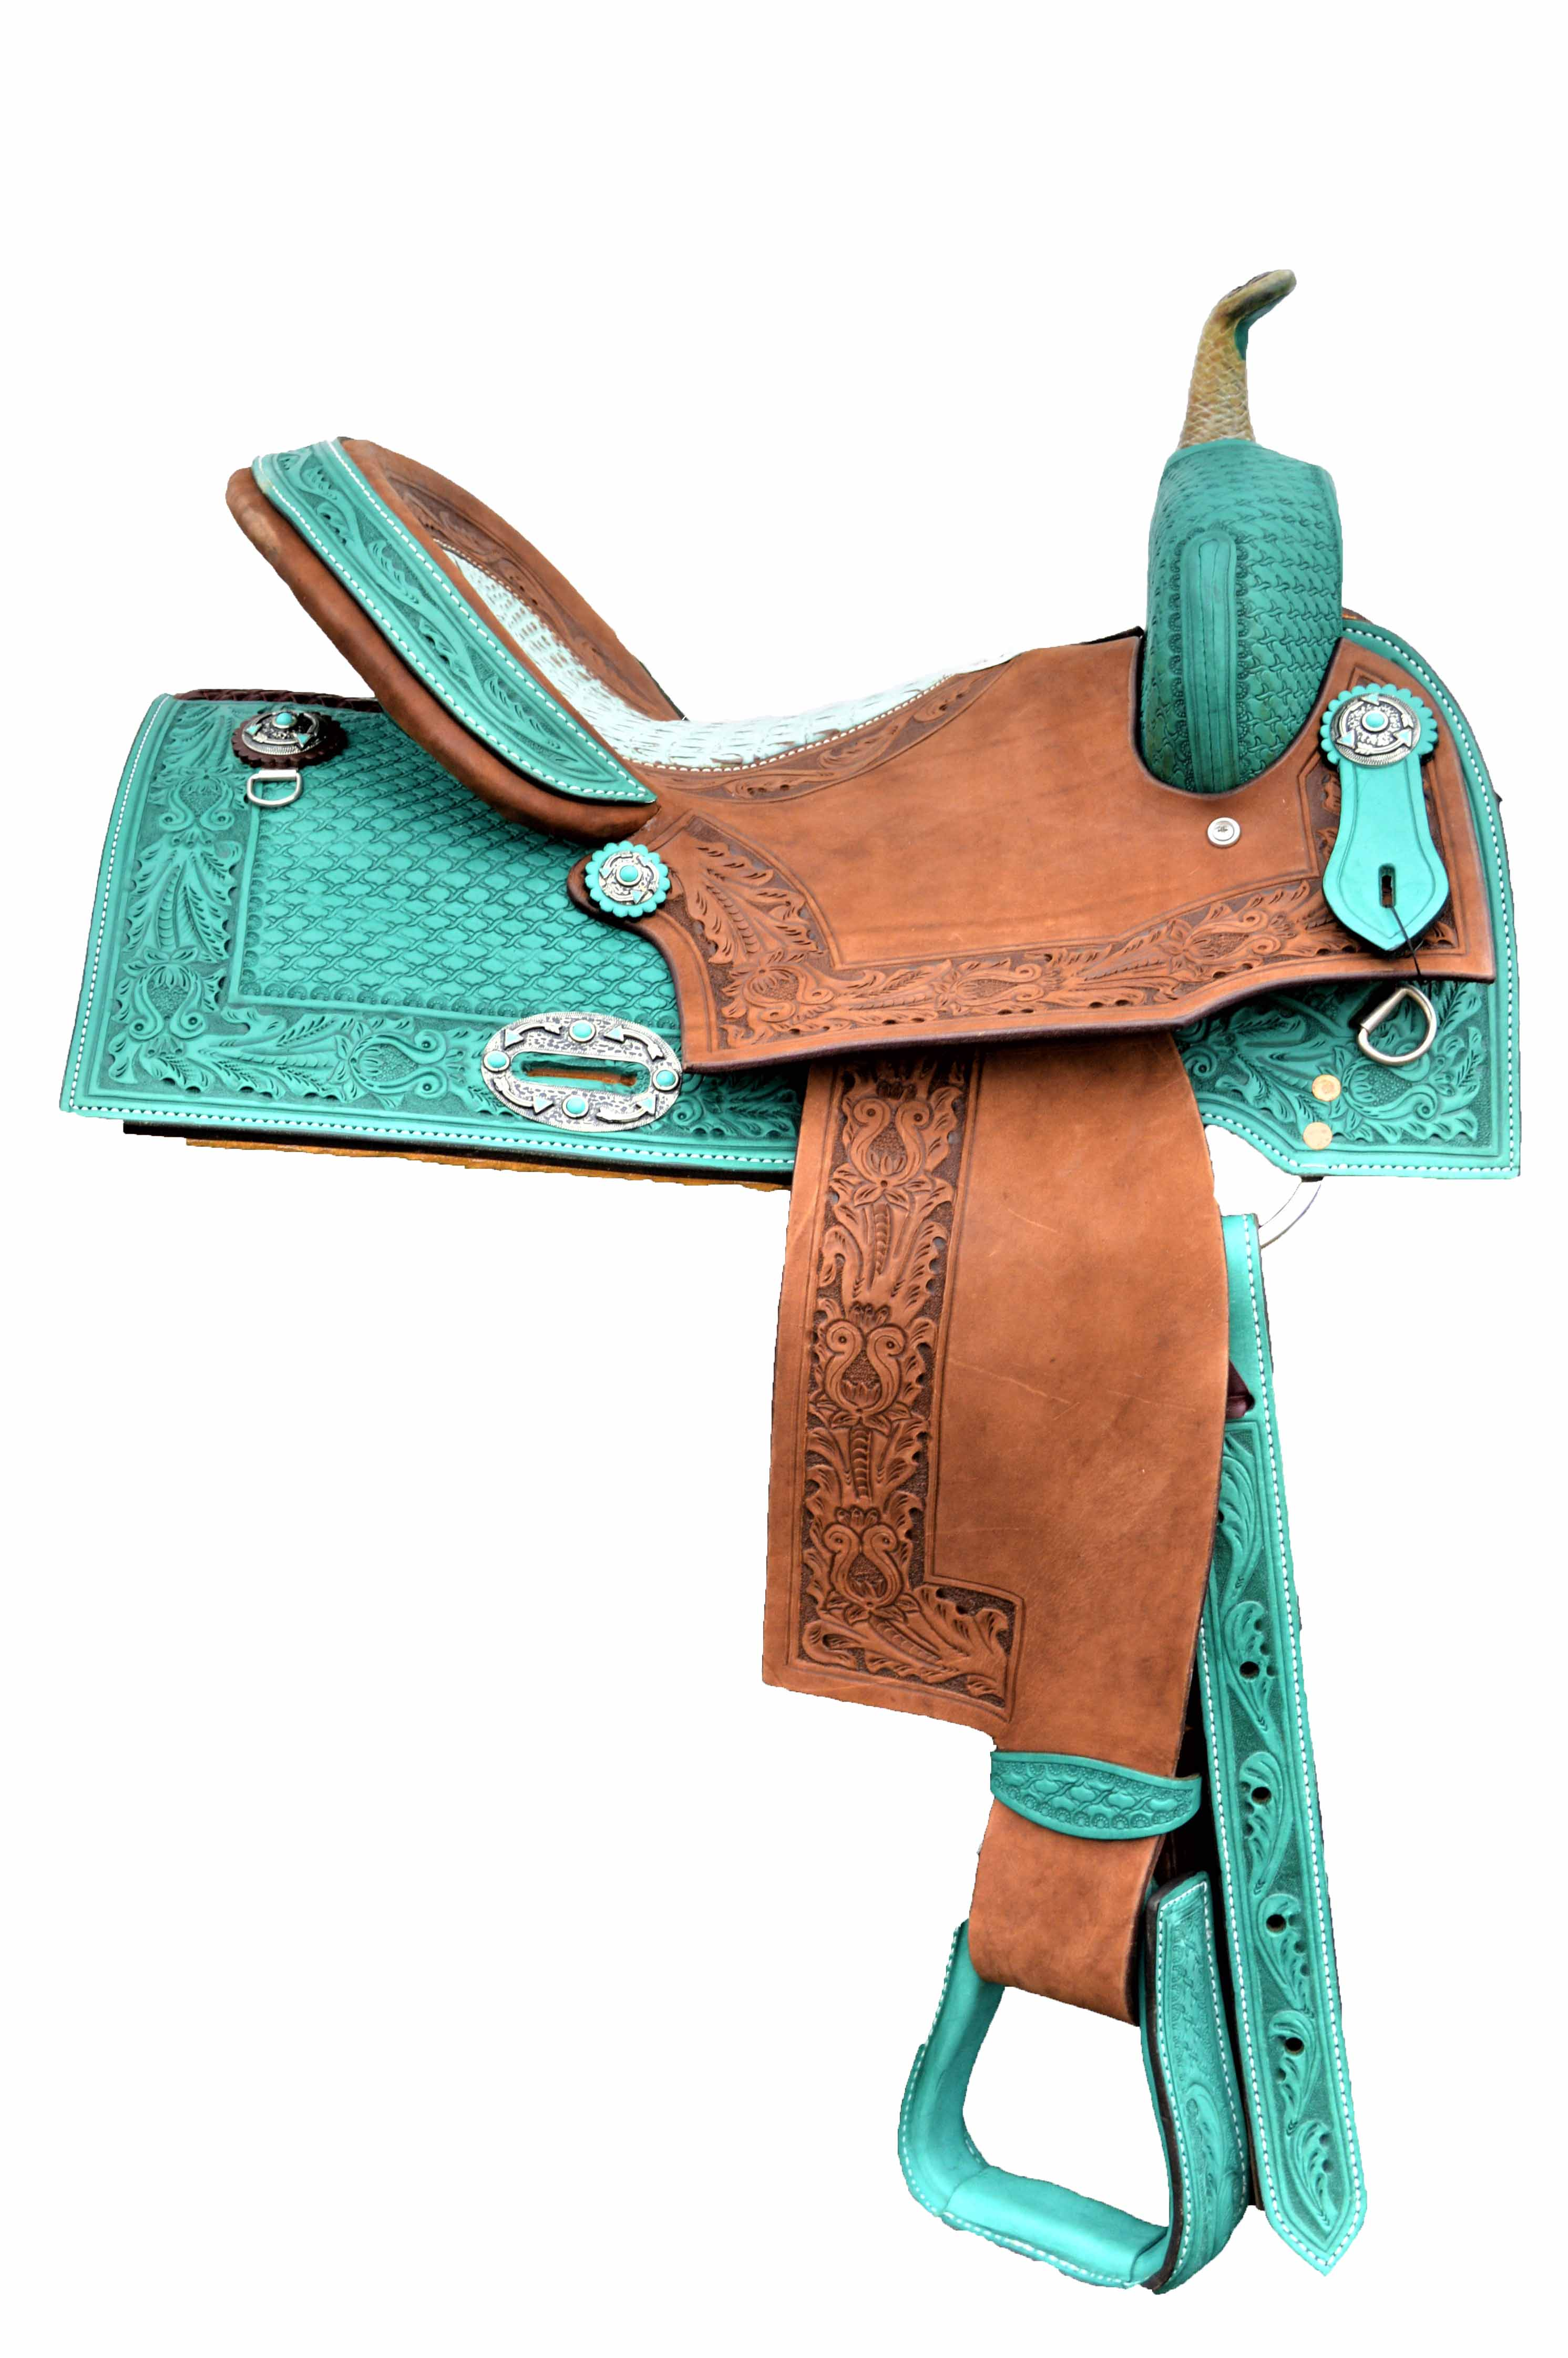 0718 Barrel/Pleasure Saddle in Turquoise leather with square cut skirt with Gator seat